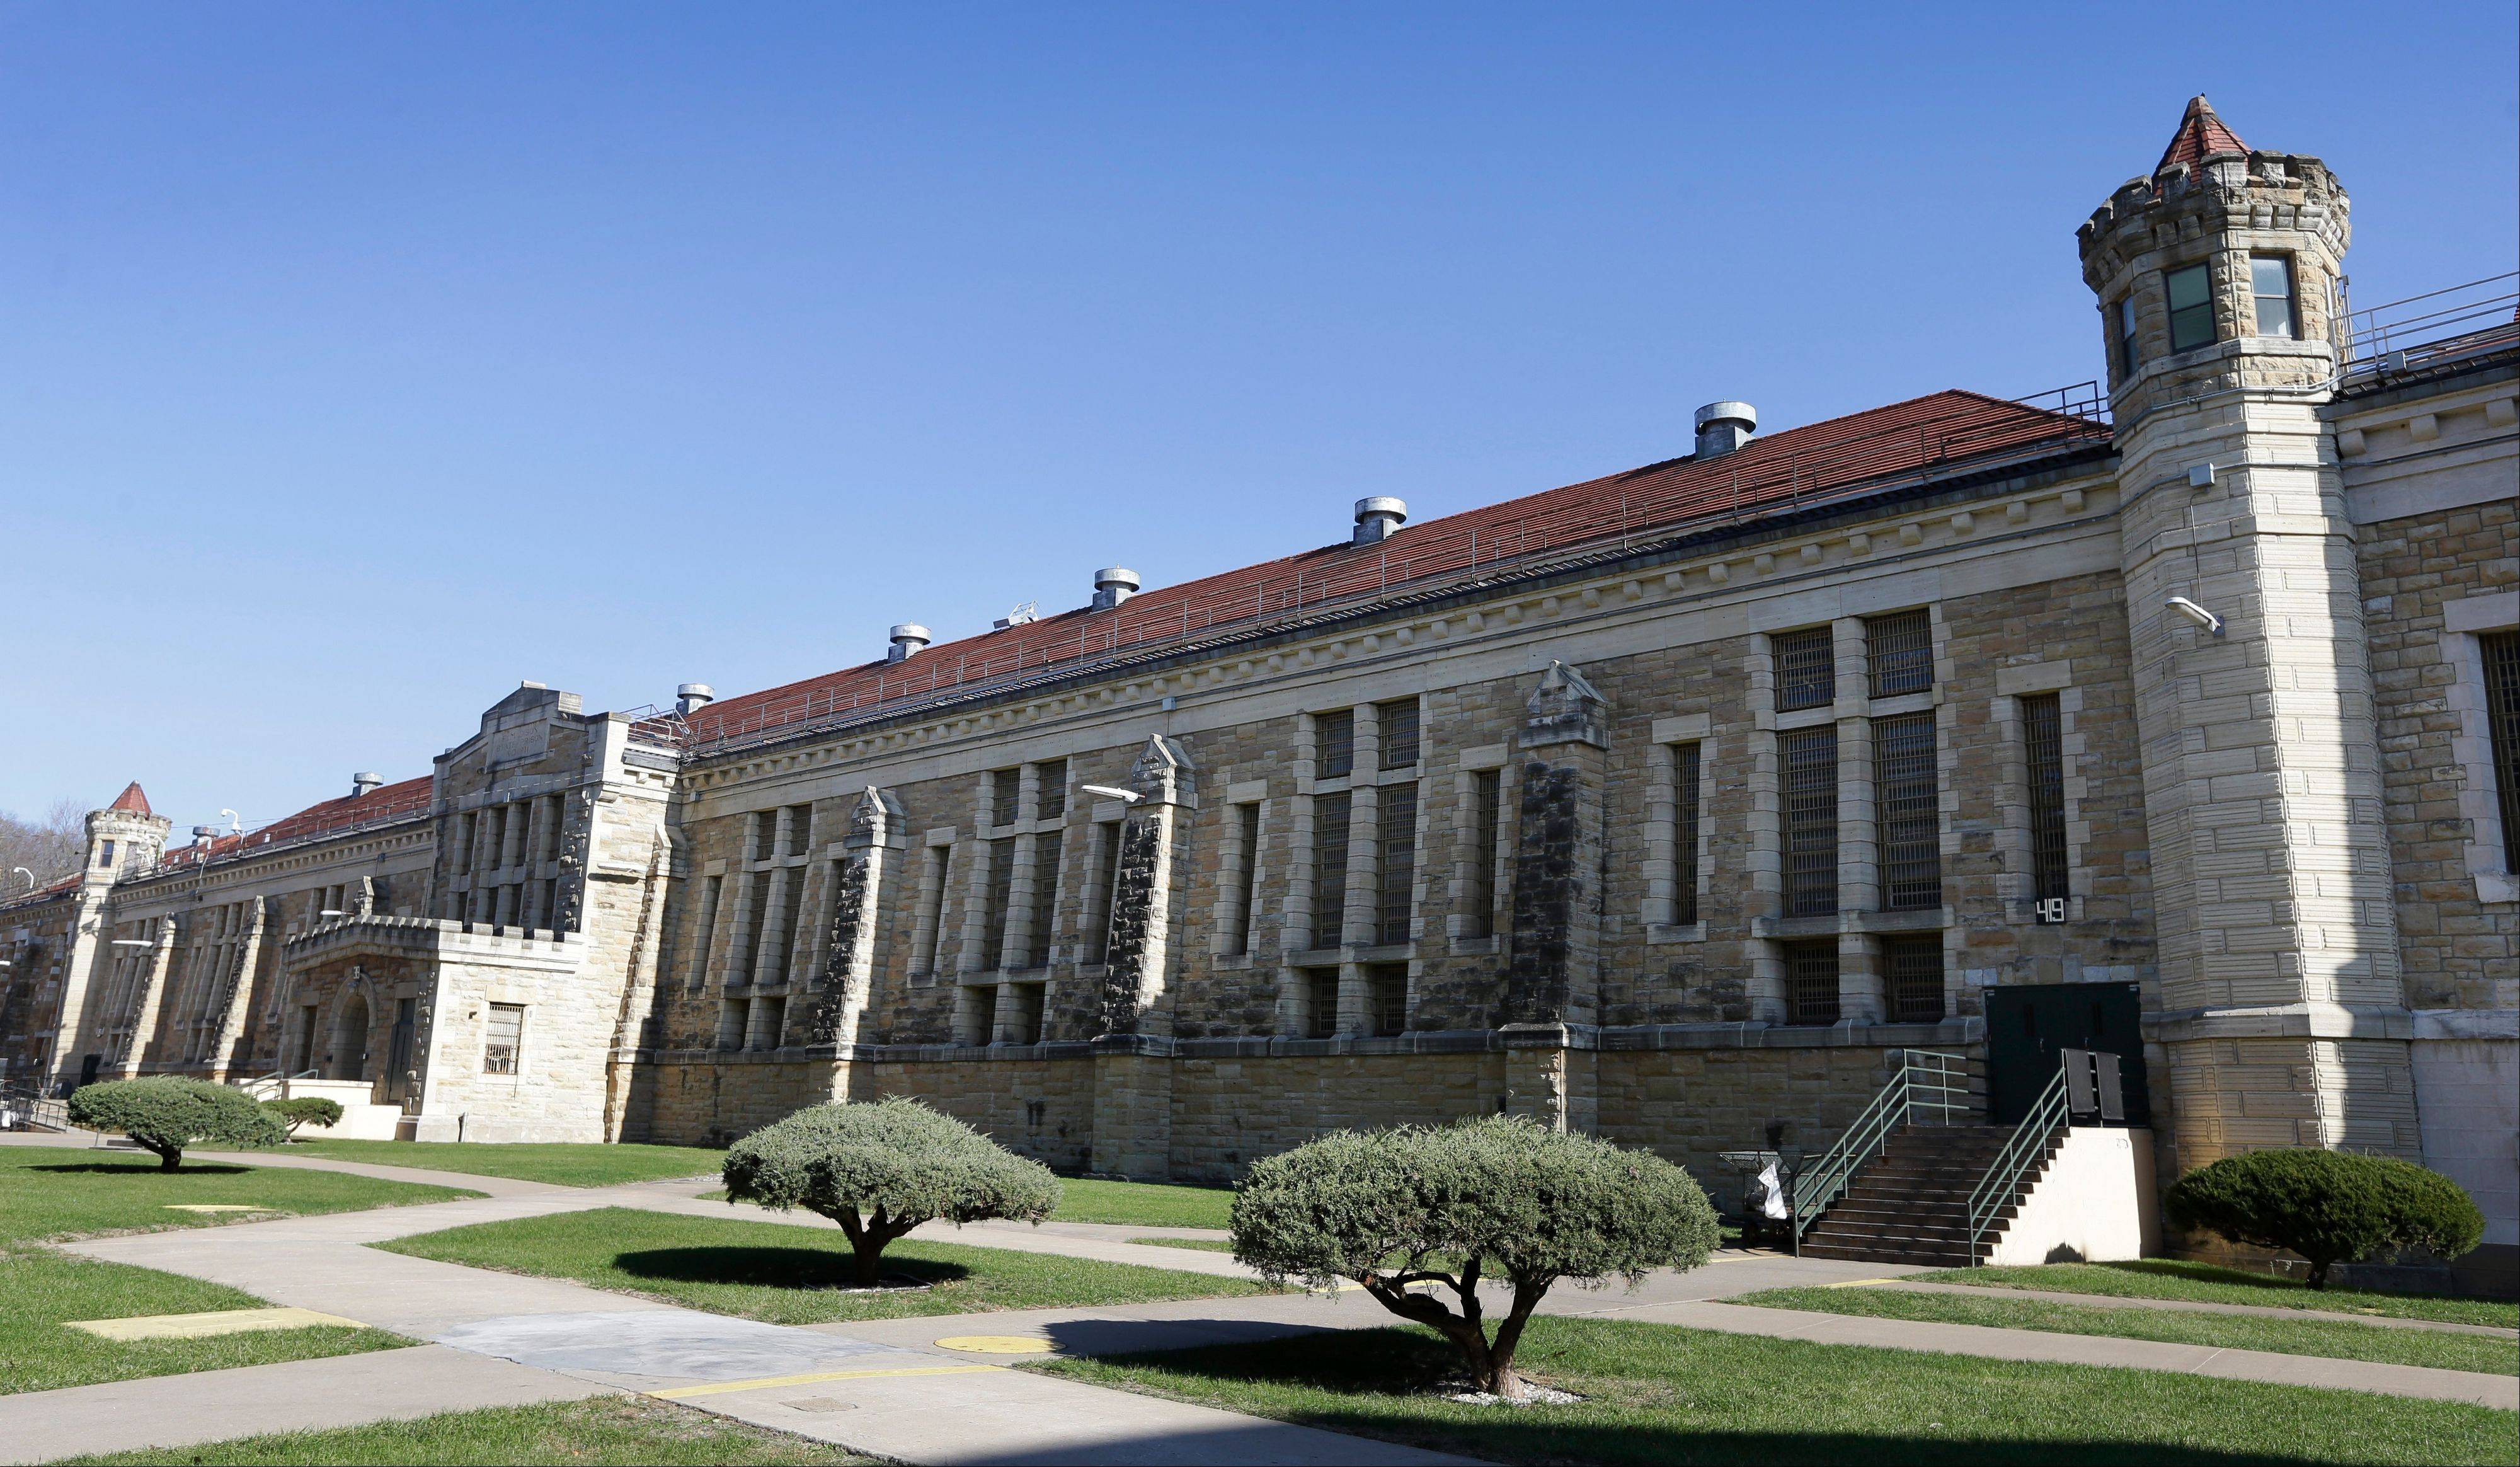 The Iowa State Penitentiary, the oldest in use west of the Mississippi River, is set to close when a $130 million replacement opens down the road next year. City and state officials are discussing how to make the best use of the sprawling and occasionally crumbling prison campus that has been the site of escapes, riots and executions.